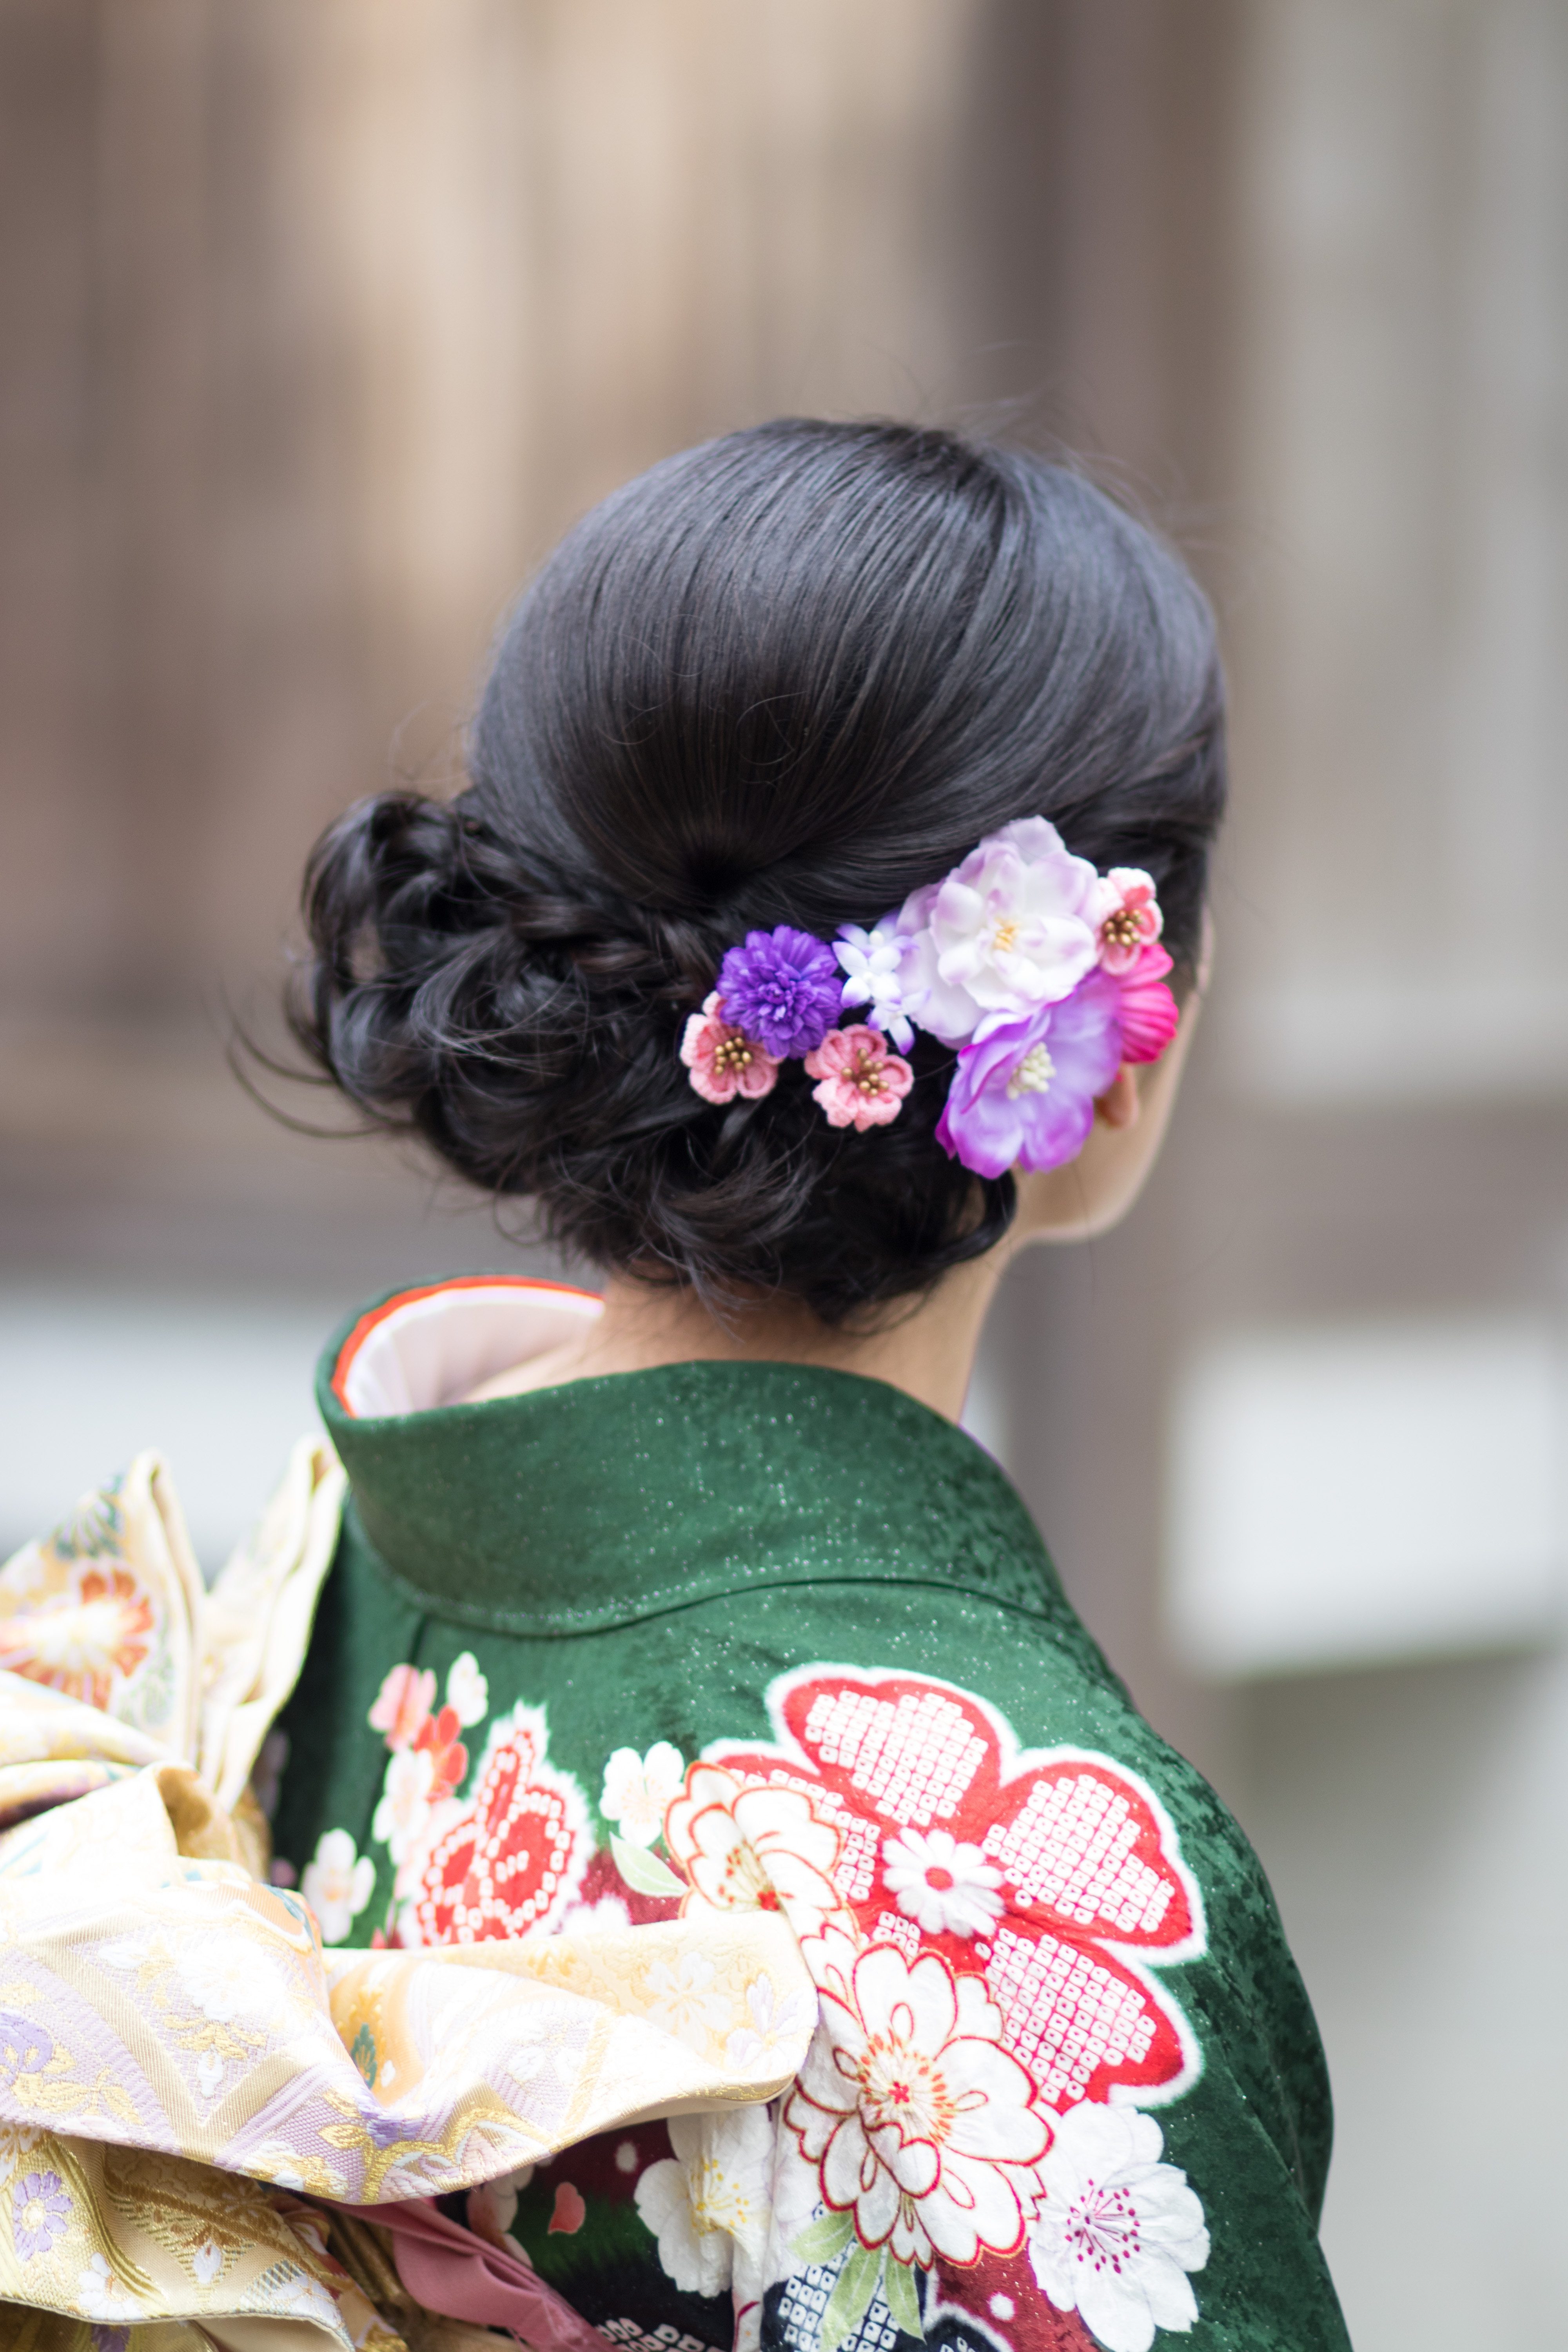 A woman in a green kimono with flowers in her hair